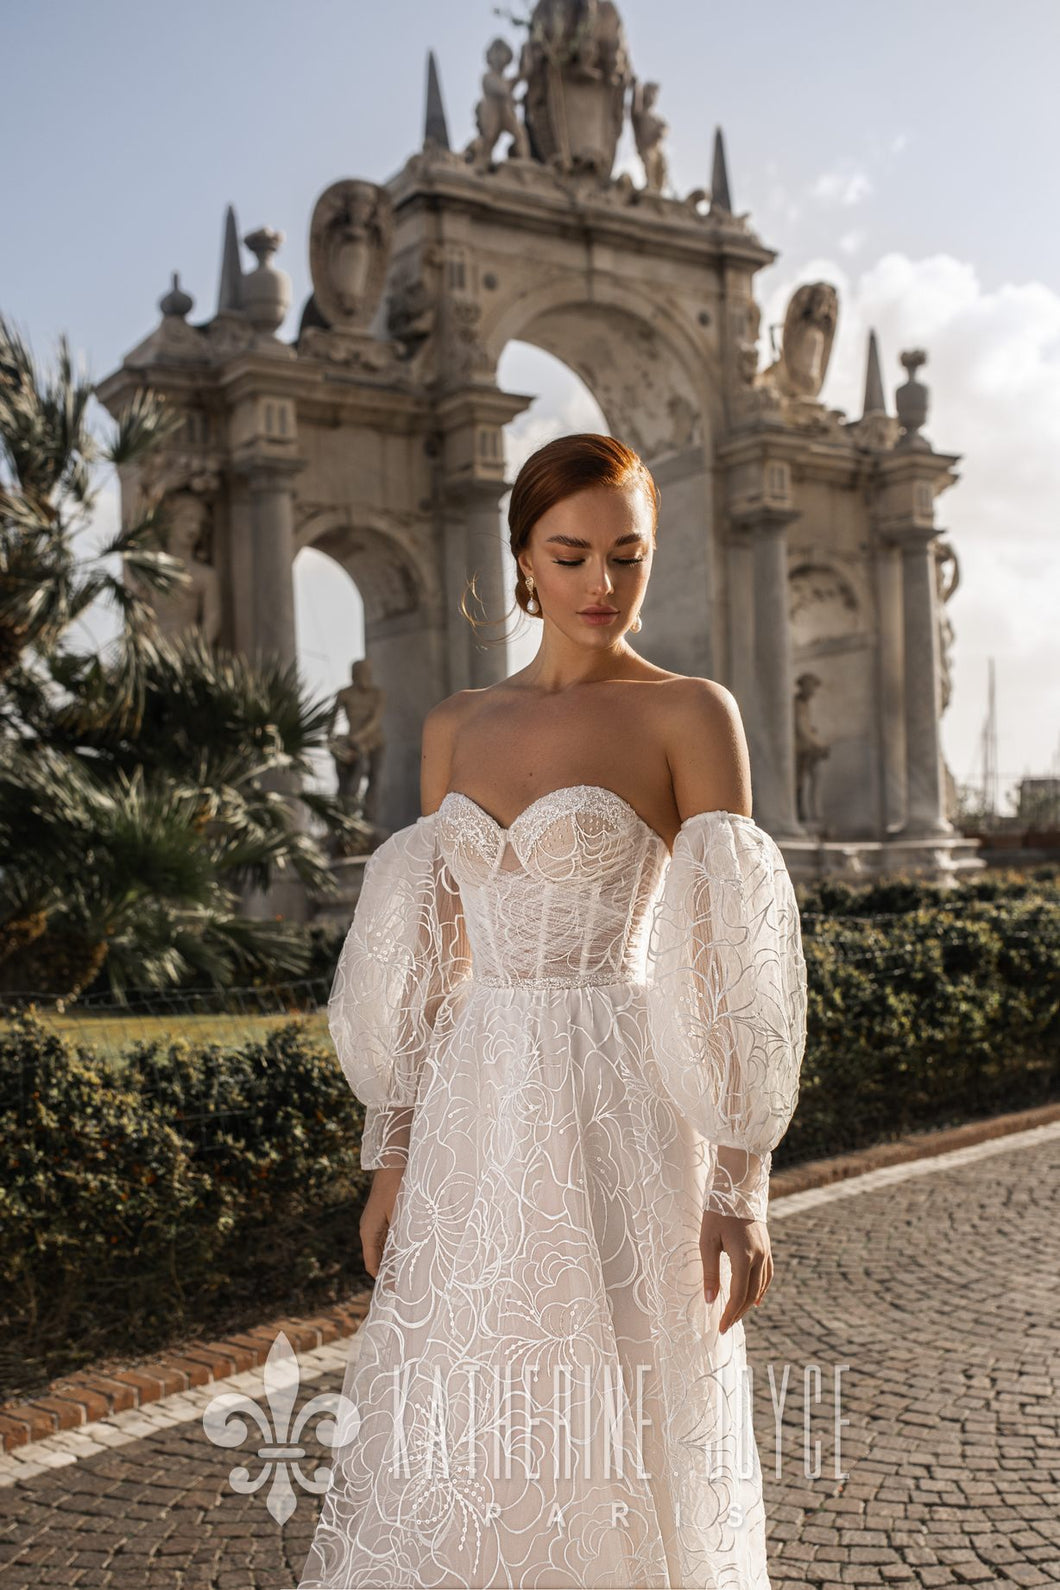 Muse in Naples 'Elizabet' Katherine Joyce Paris RTW 11201-450 Ready To Wear European Bridal Wedding Gown Designer Philippines